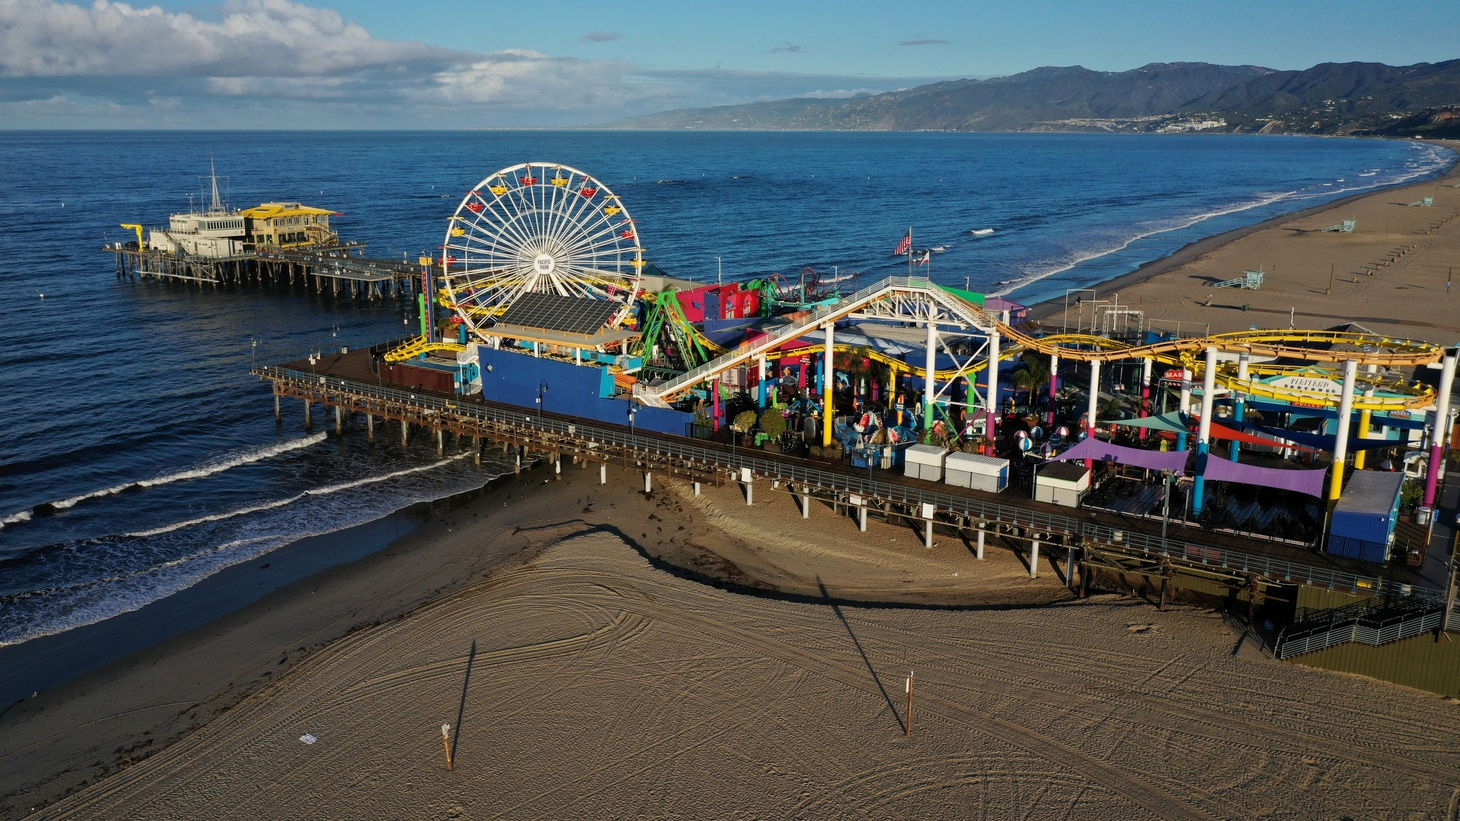 The Santa Monica pier and beaches on the Pacific Ocean are empty after California issued a stay-at-home order due to coronavirus disease (COVID-19) in Santa Monica, California, U.S., March 25, 2020.